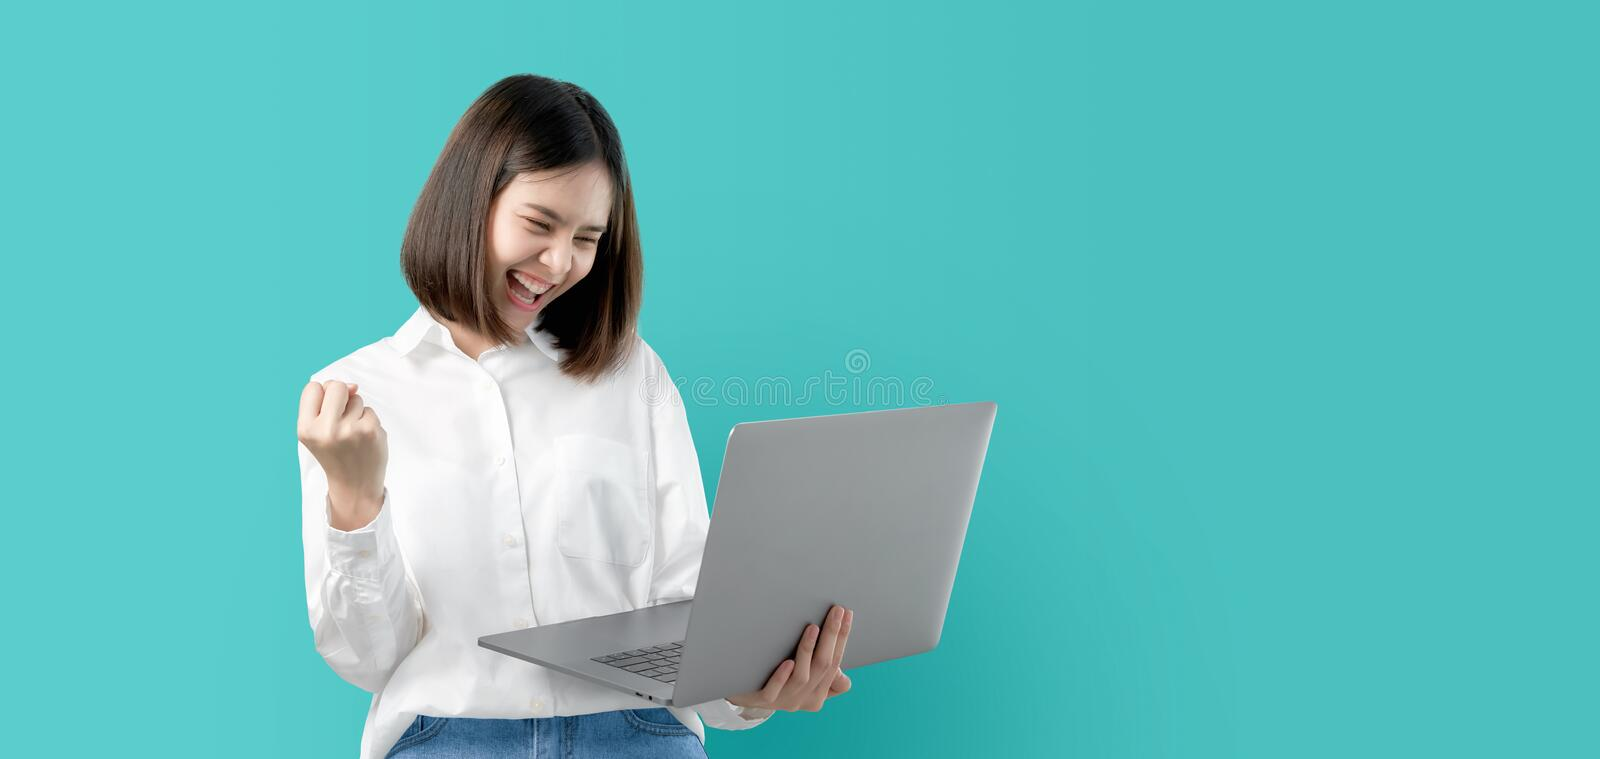 Young Asian woman smiling holding laptop computer with fist hand and excited for success on light blue background royalty free stock photography